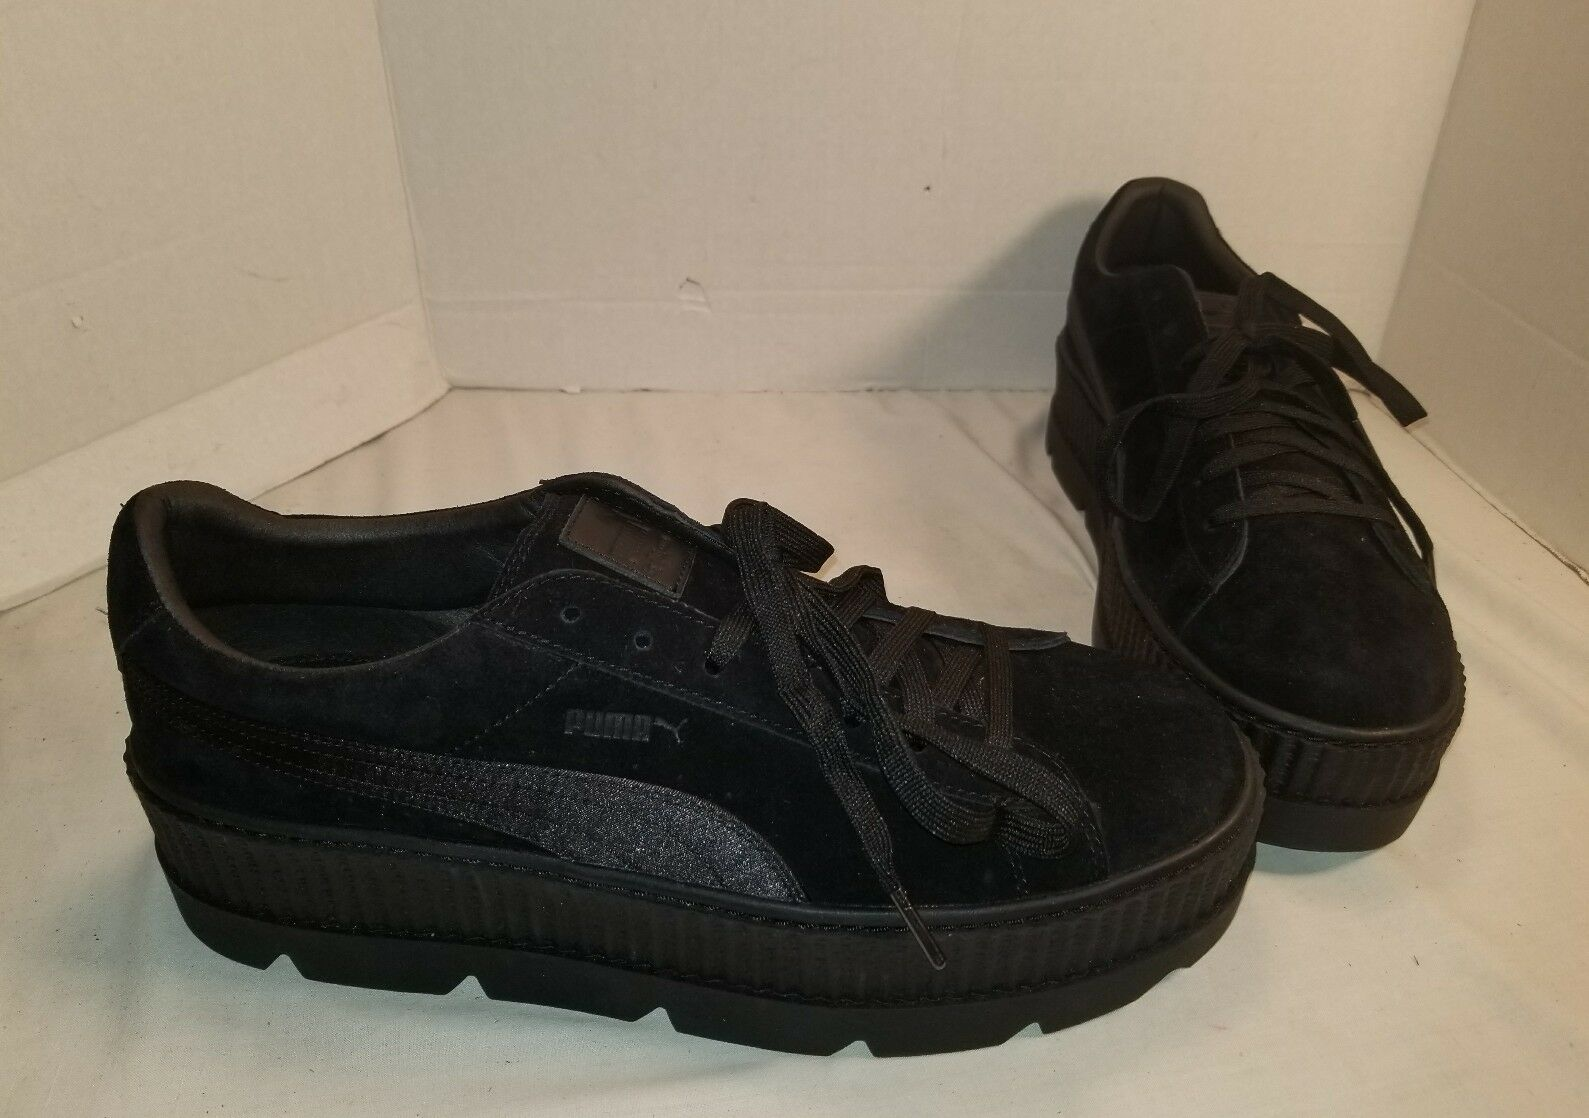 NEW PUMA FENTY BY RIHANNA CLEATED CREEPER Noir SUEDE Homme SNEAKERS US 13